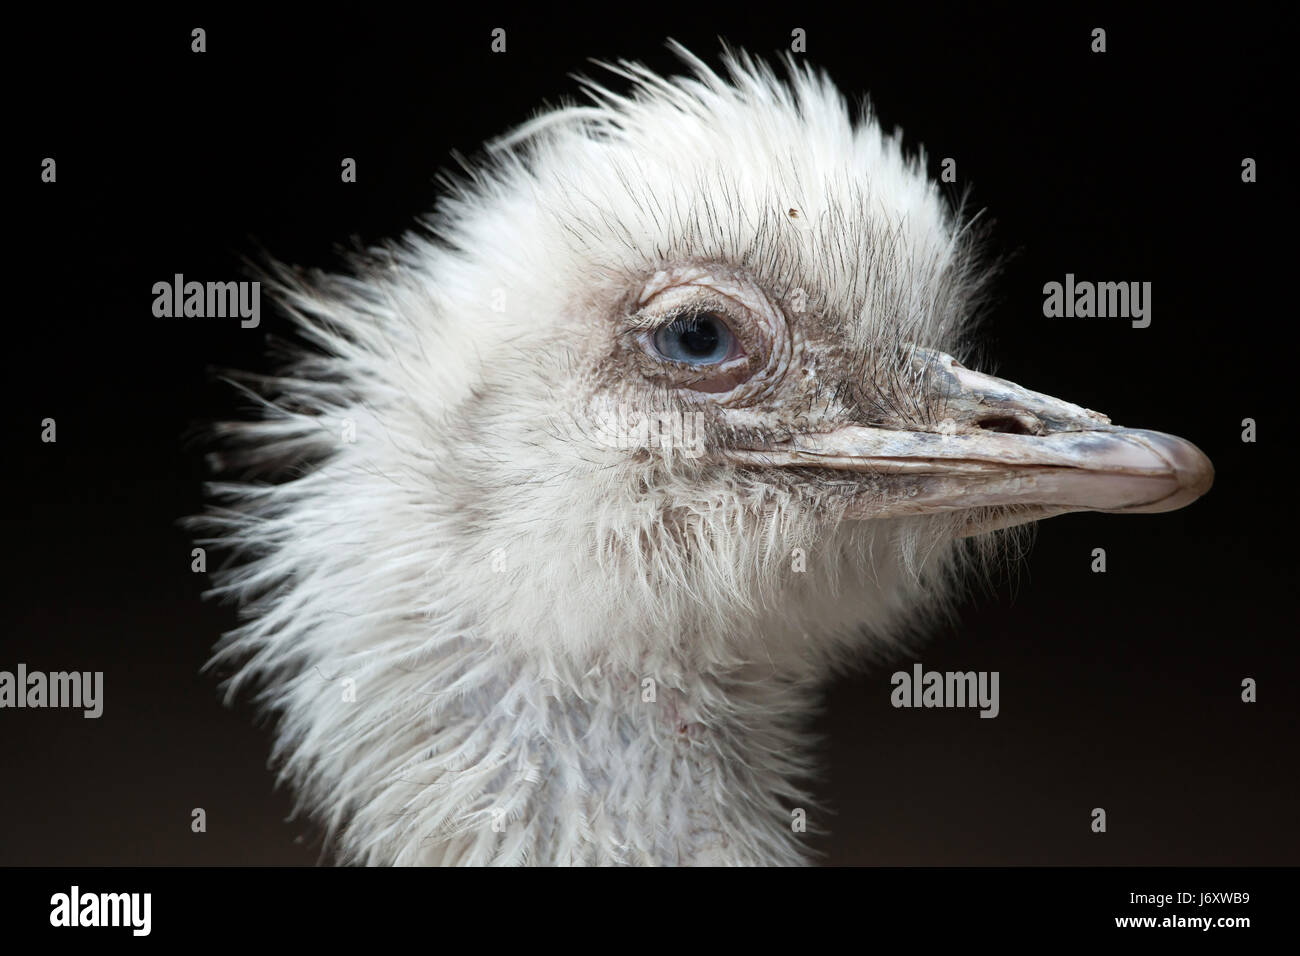 Greater rhea (Rhea americana), also known as the common rhea. White leucistic form. - Stock Image